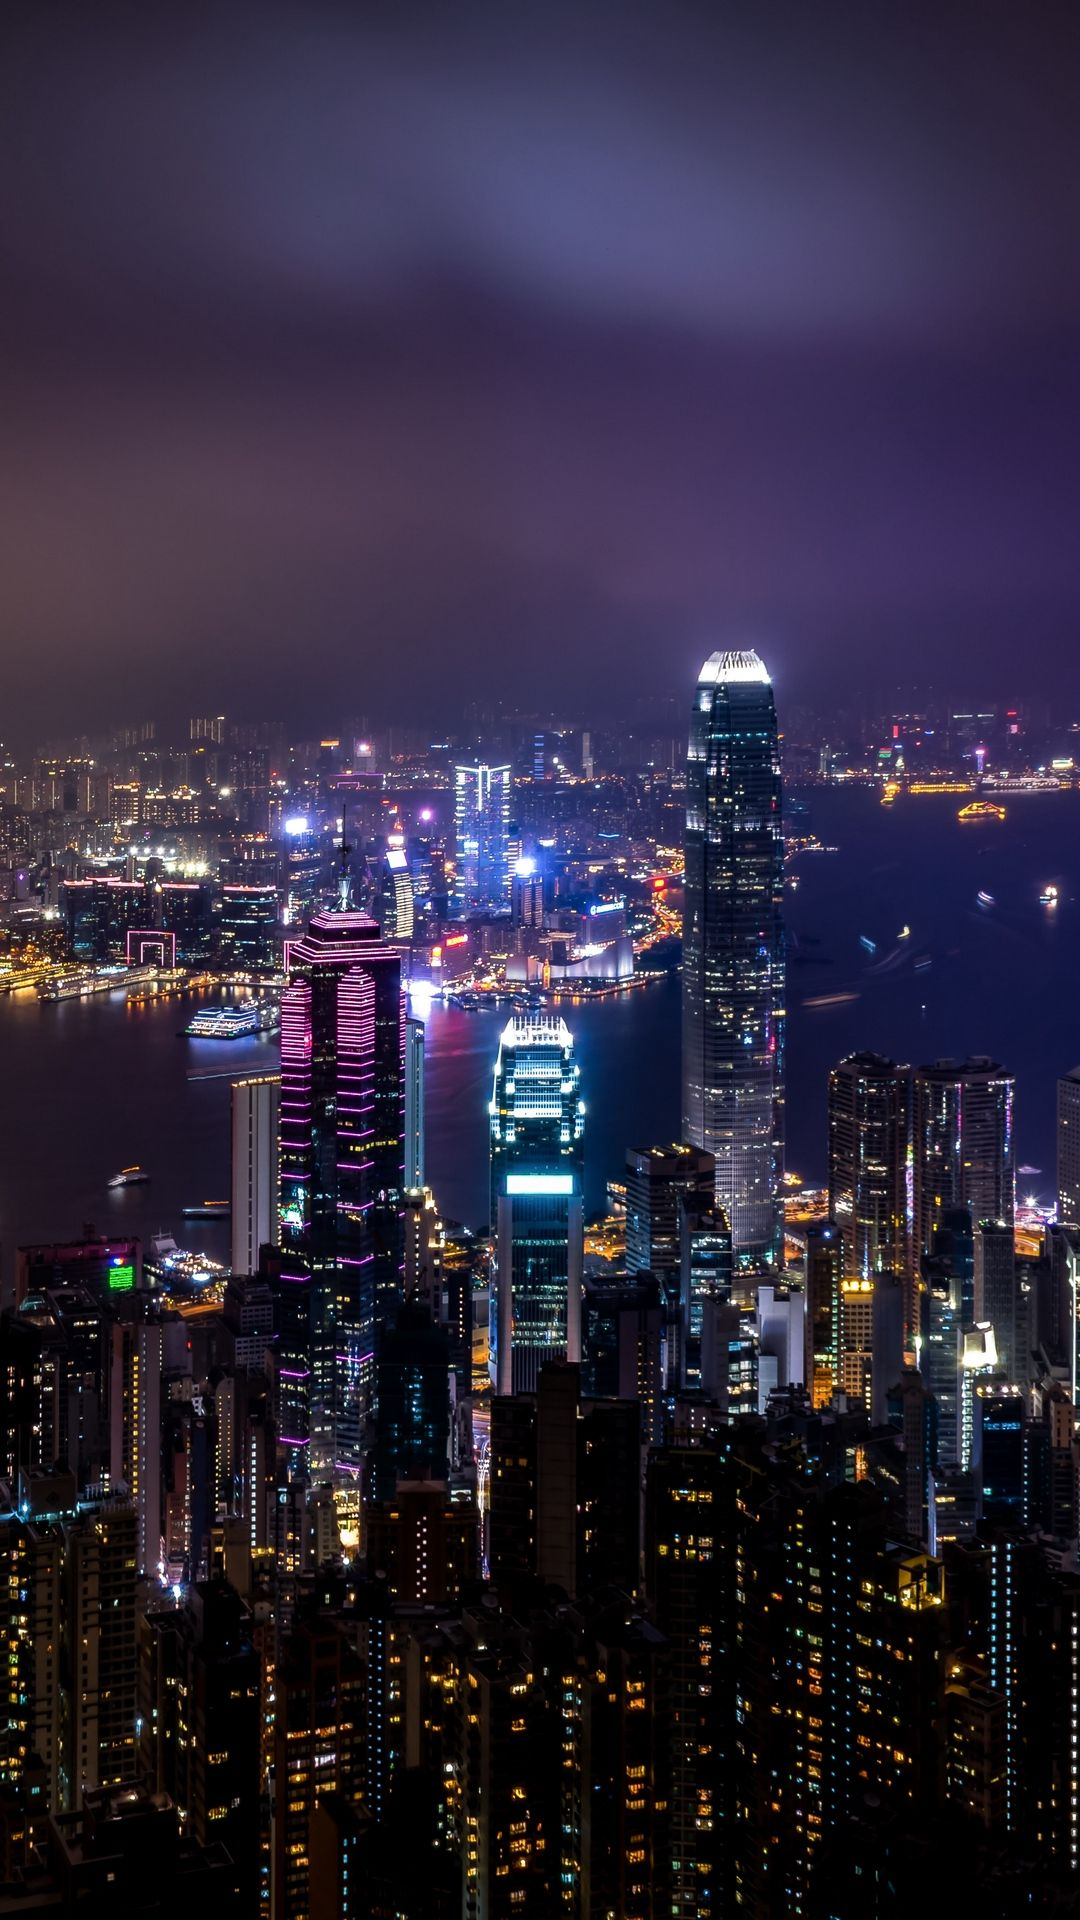 China Hong Kong Skyscrapers City Wallpaper Lockscreen